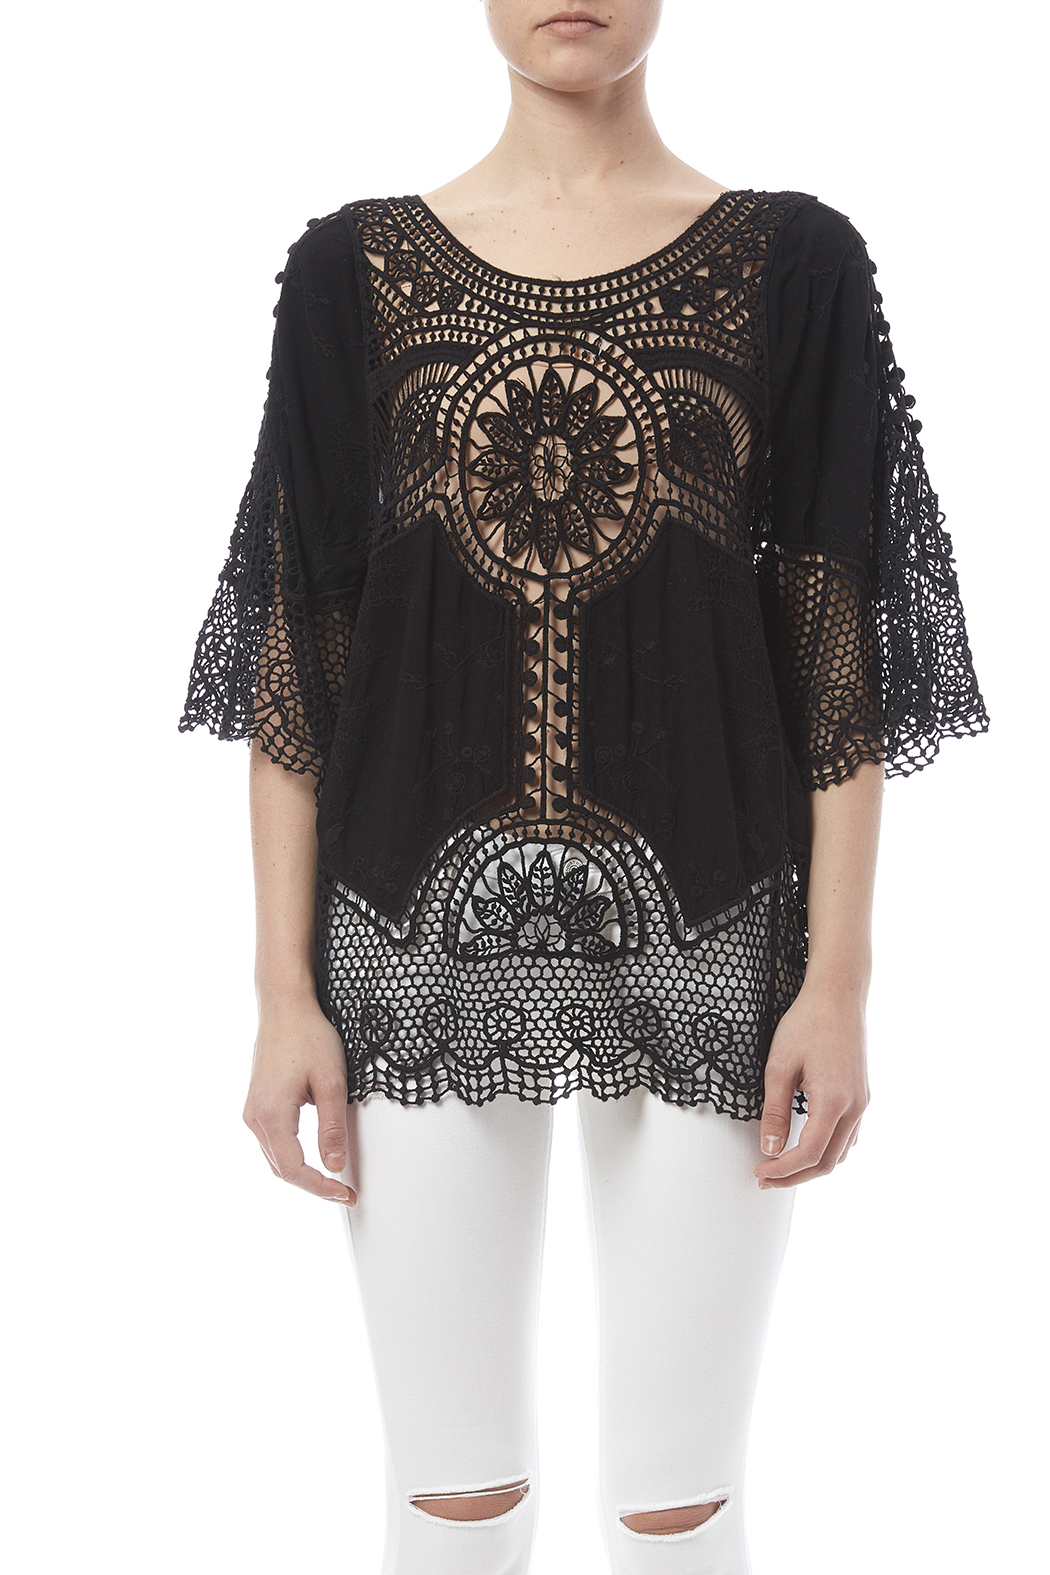 fashion on earth Black Crochet Top - Side Cropped Image